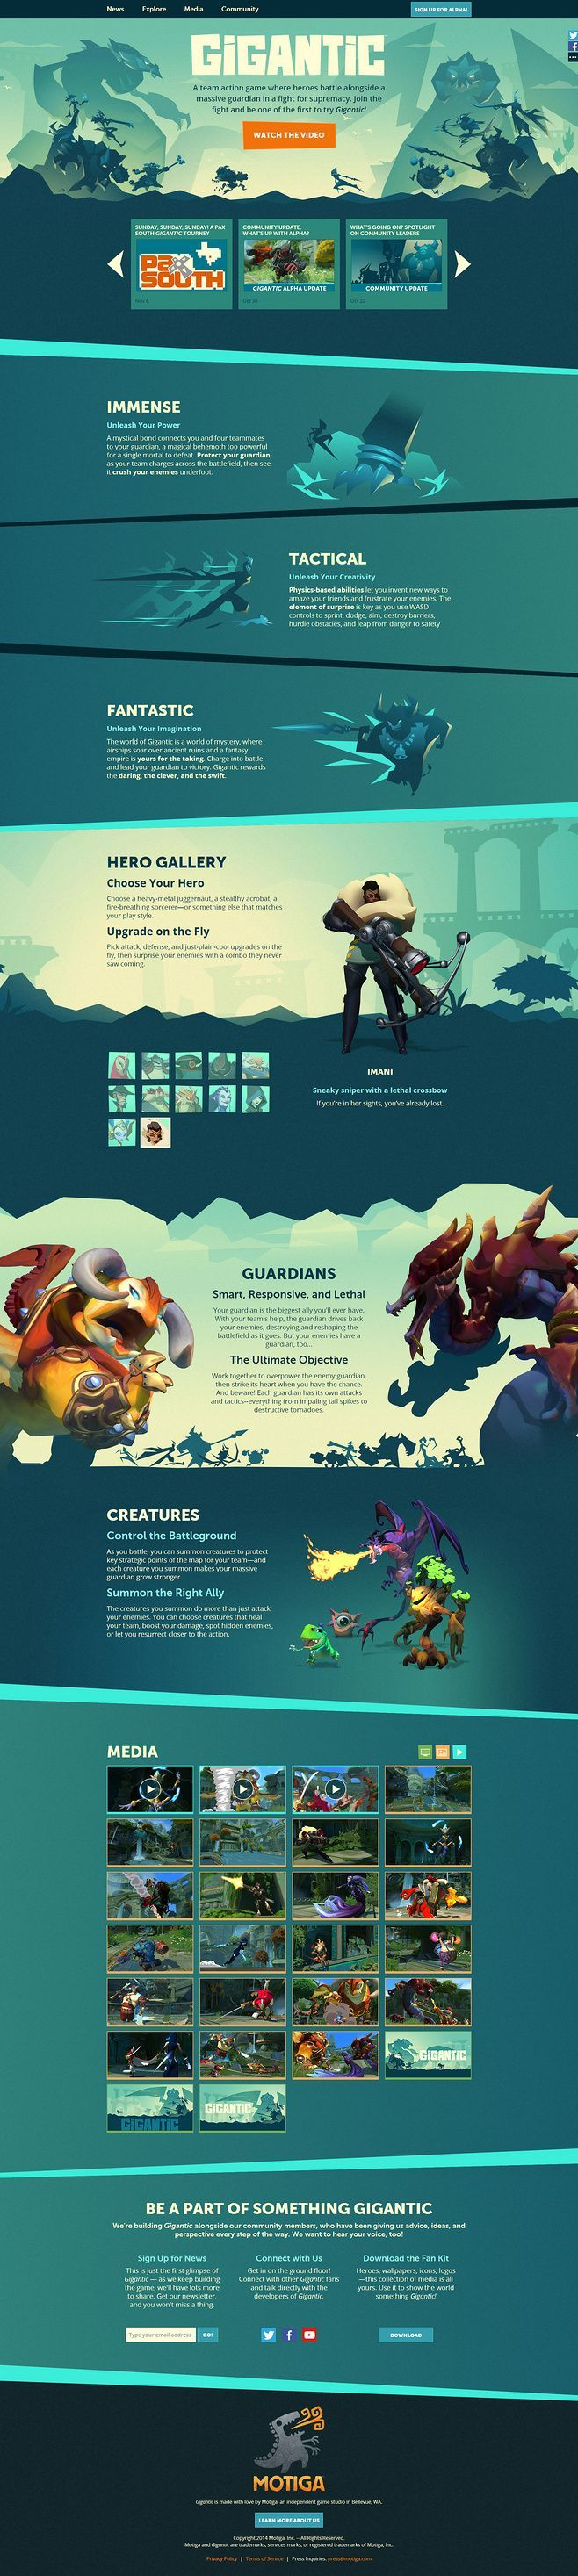 Gigantic by Motiga.                                                                                                                                                                                 More